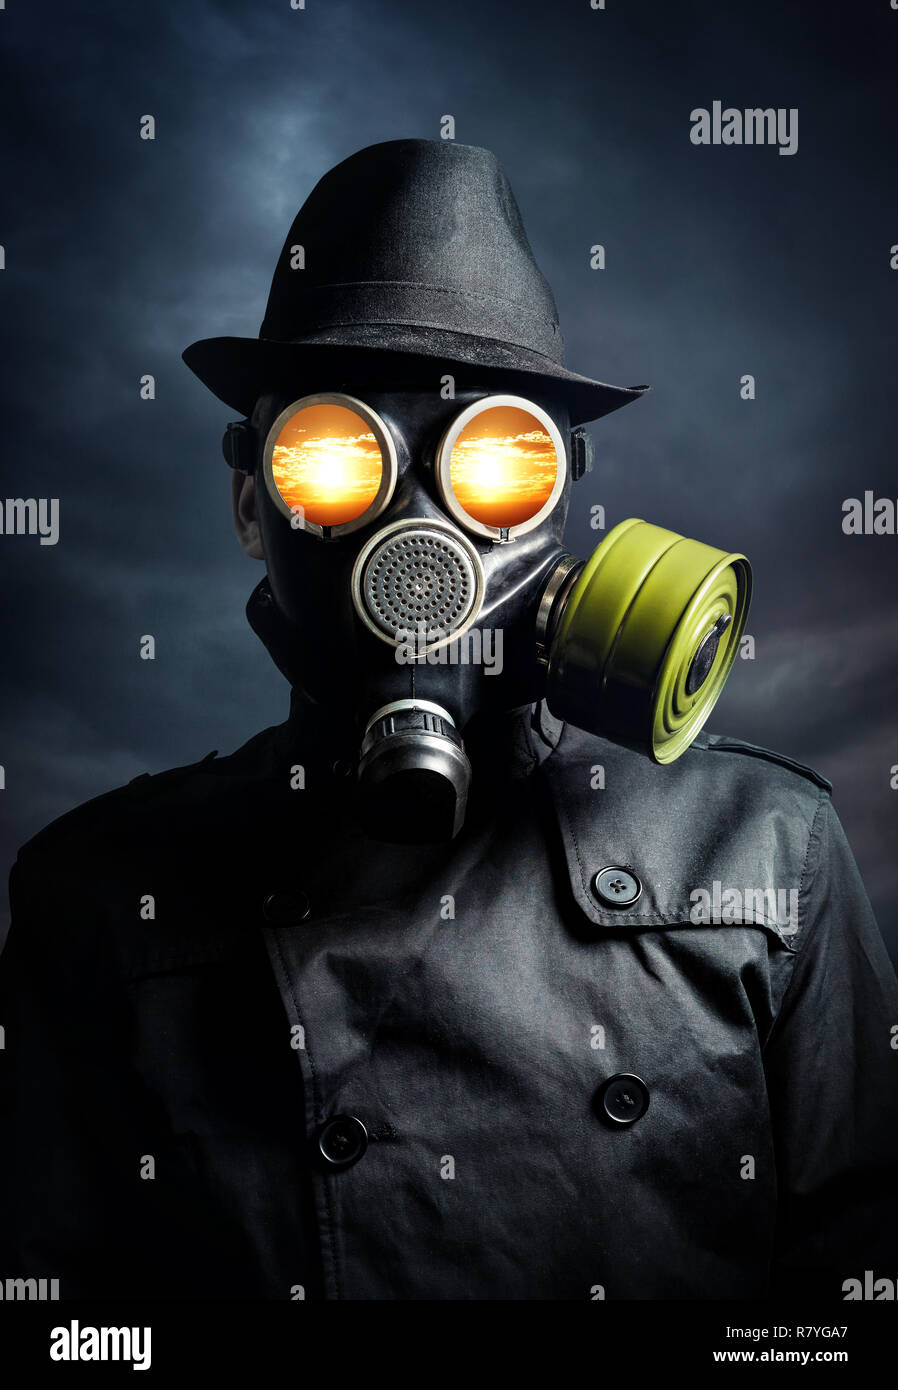 Man in gas mask with explosion in his eyes at dark sky background - Stock Image